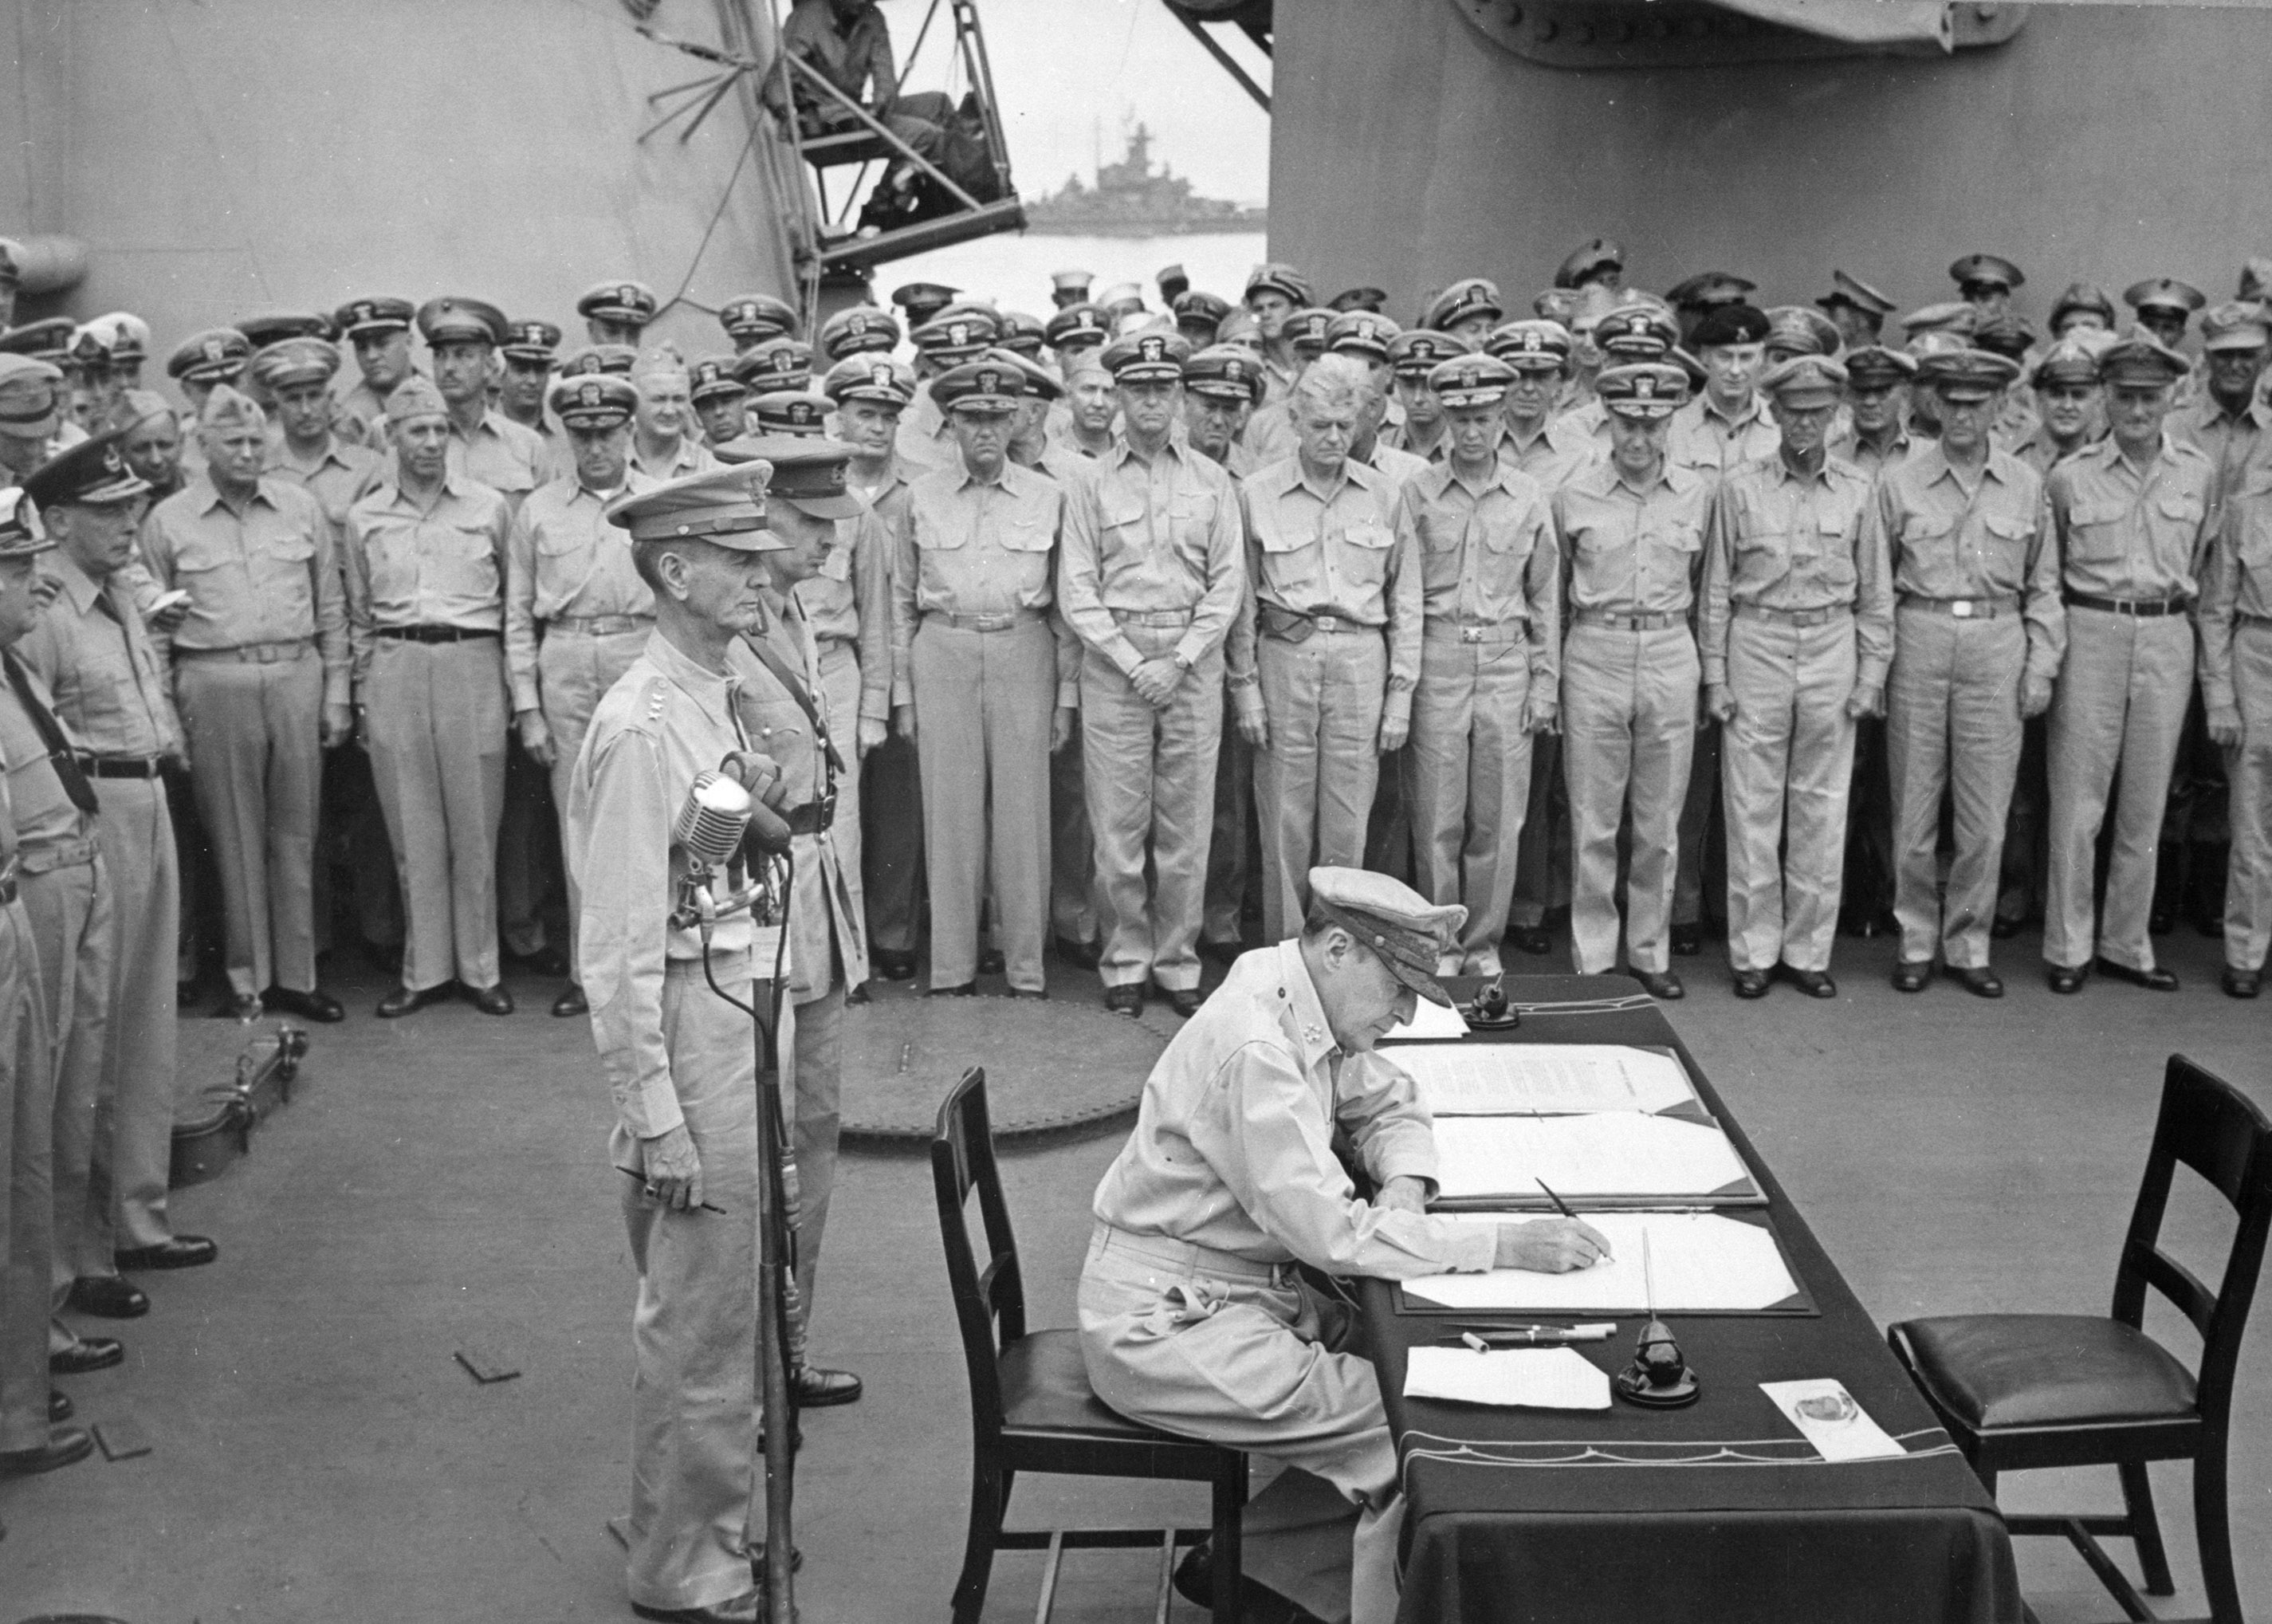 Gen. Douglas MacArthur signs formal surrender documents aboard the <em>USS Missouri</em> during ceremonies in Tokyo Bay on Sept. 2, 1945. Behind MacArthur are Lt. Gen. Jonathan Wainwright and Lt. Gen. A. E. Percival. Photo No. 280-G-348366 courtesy National Archives.